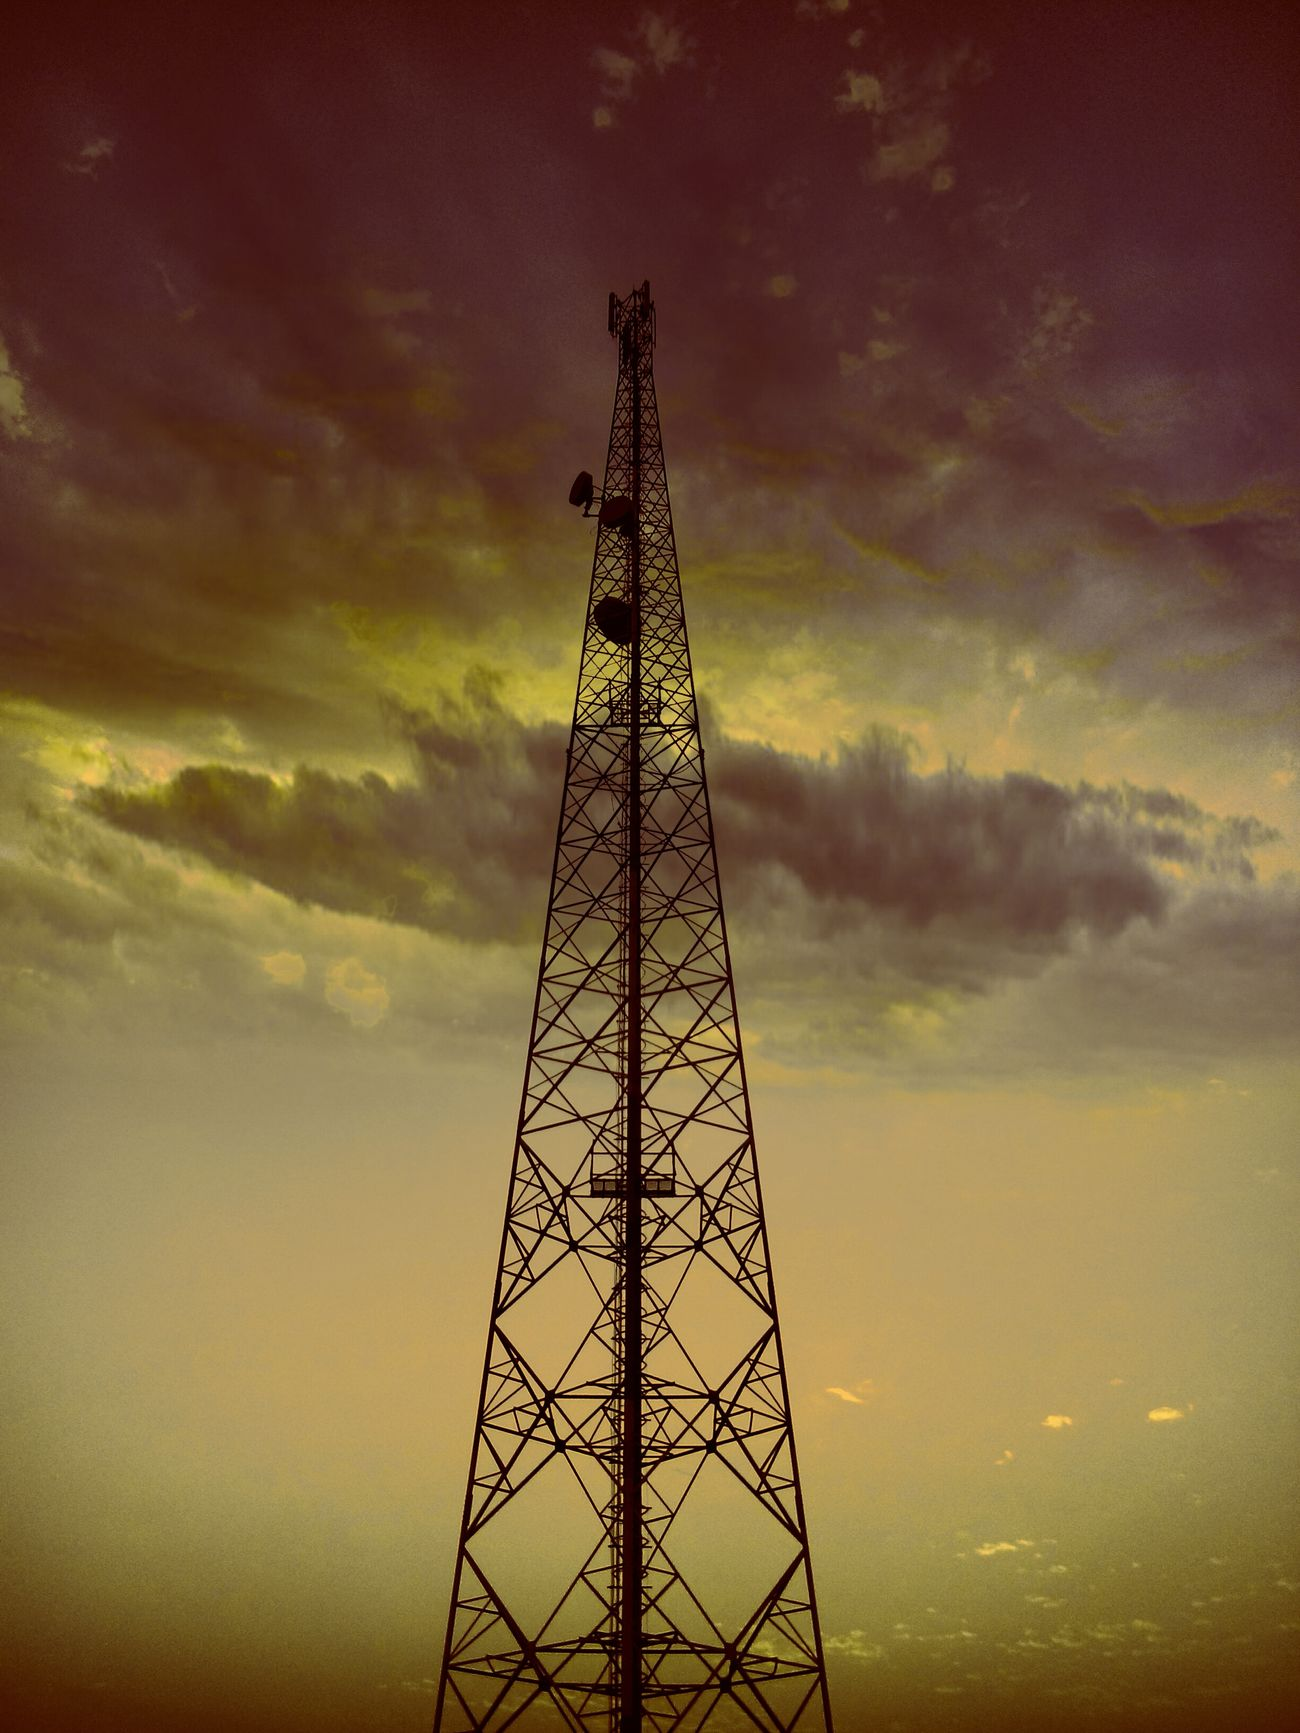 Taking Photos Edit Hello World Tower Check This Out Eyeem Pakistan In Pakistan